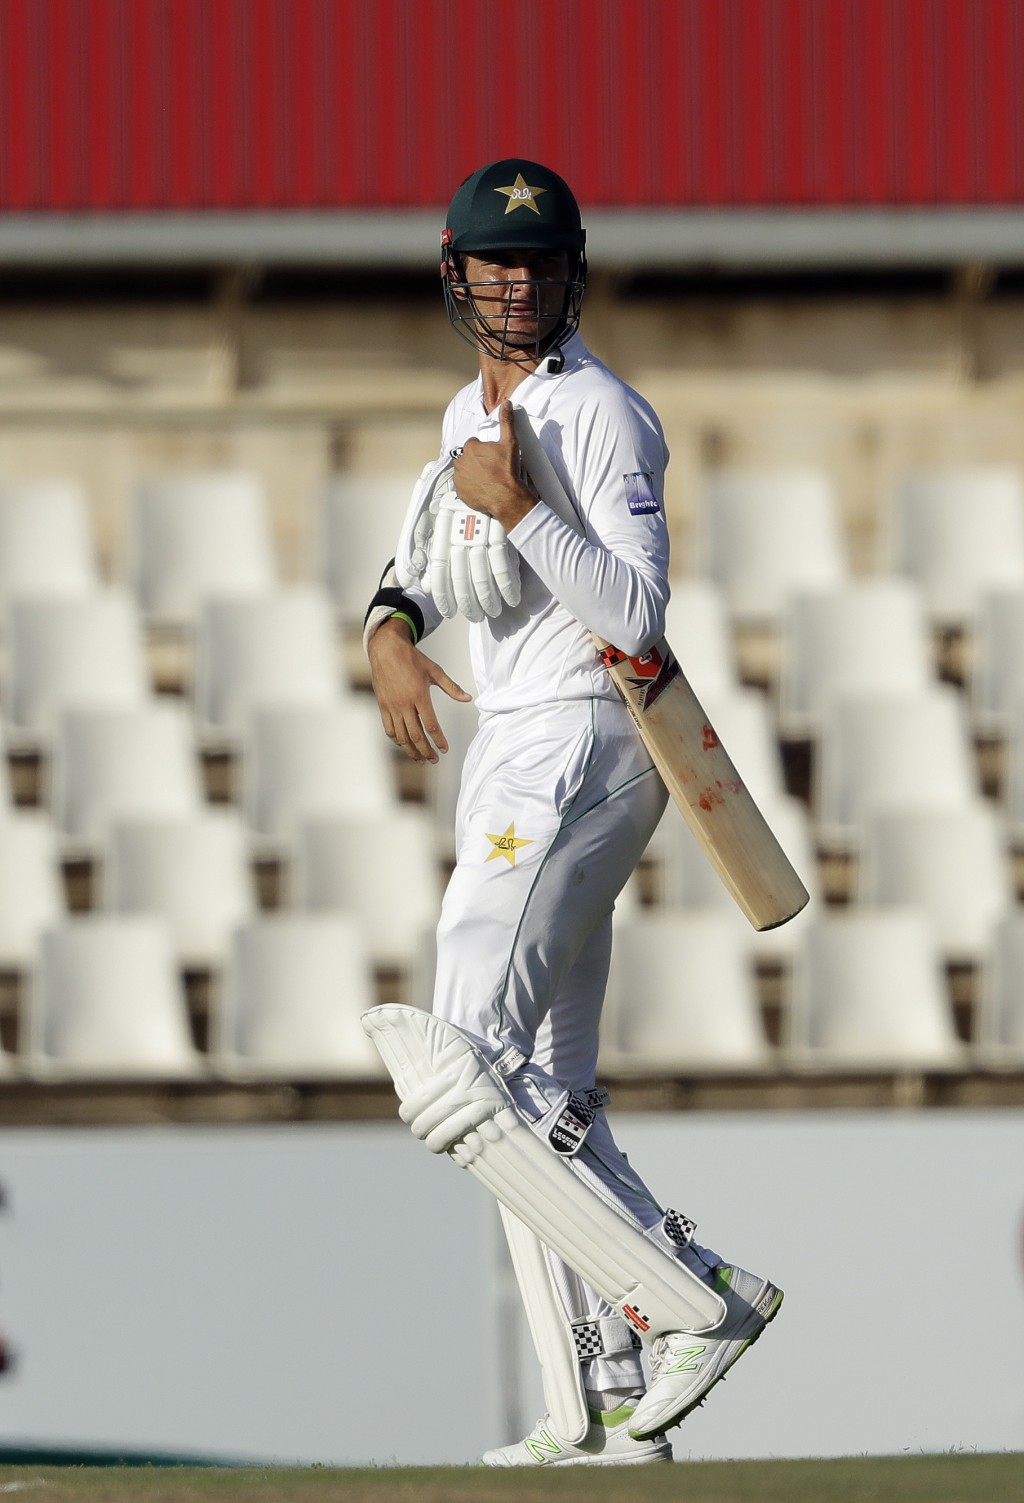 Pakistan's batsman Shaheen Afridi leaves the field after dismissed by South Africa's bowler Duanne Olivier for 4 runs on day two of the first cricket ...